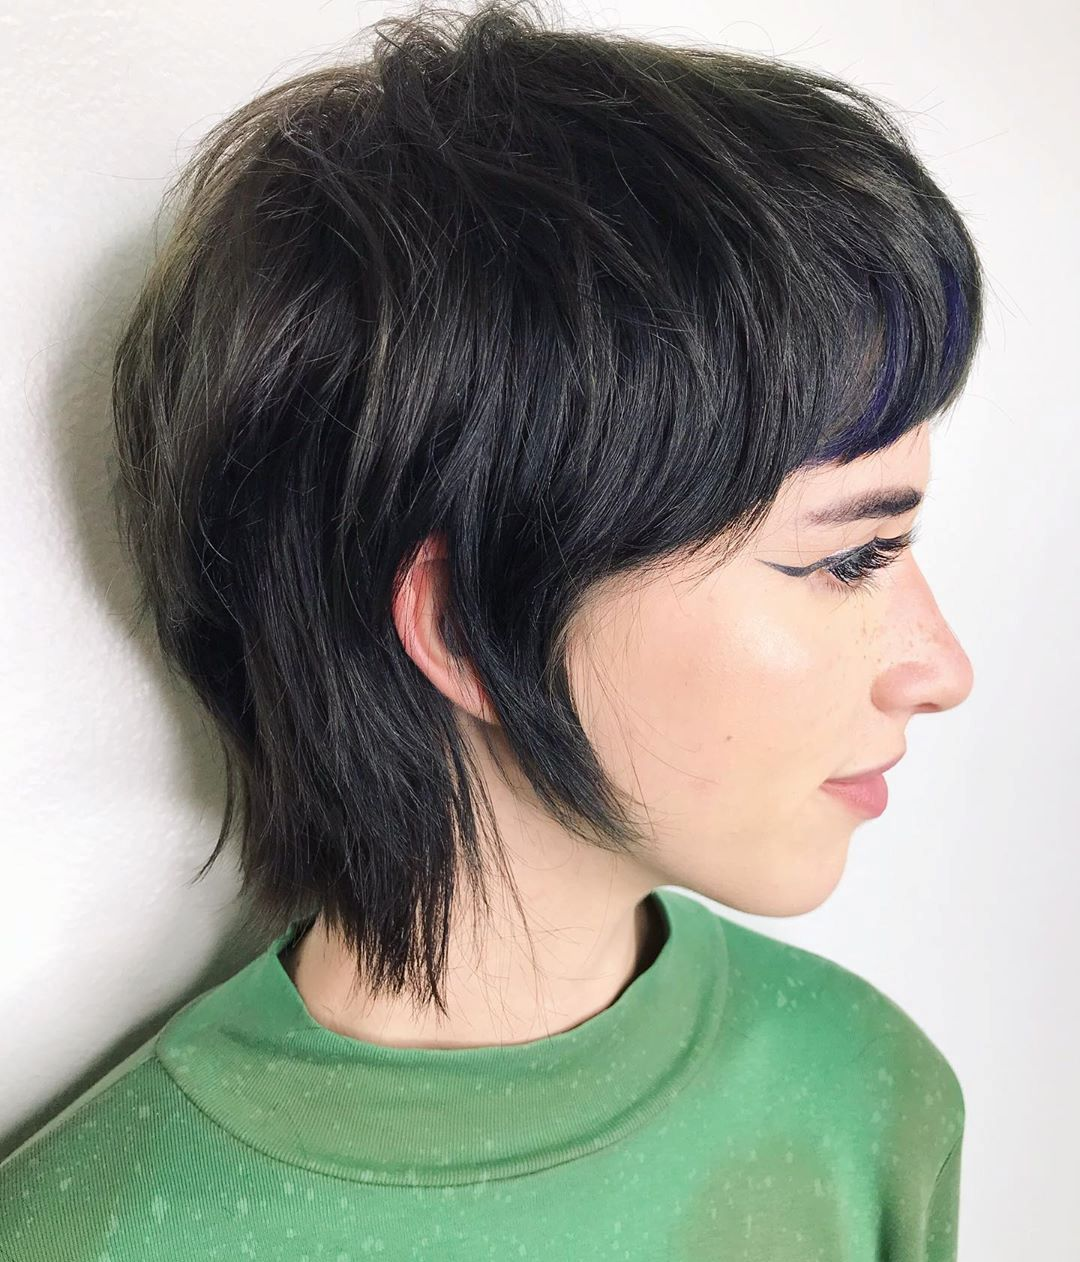 Pixie Haircut with Sideburns